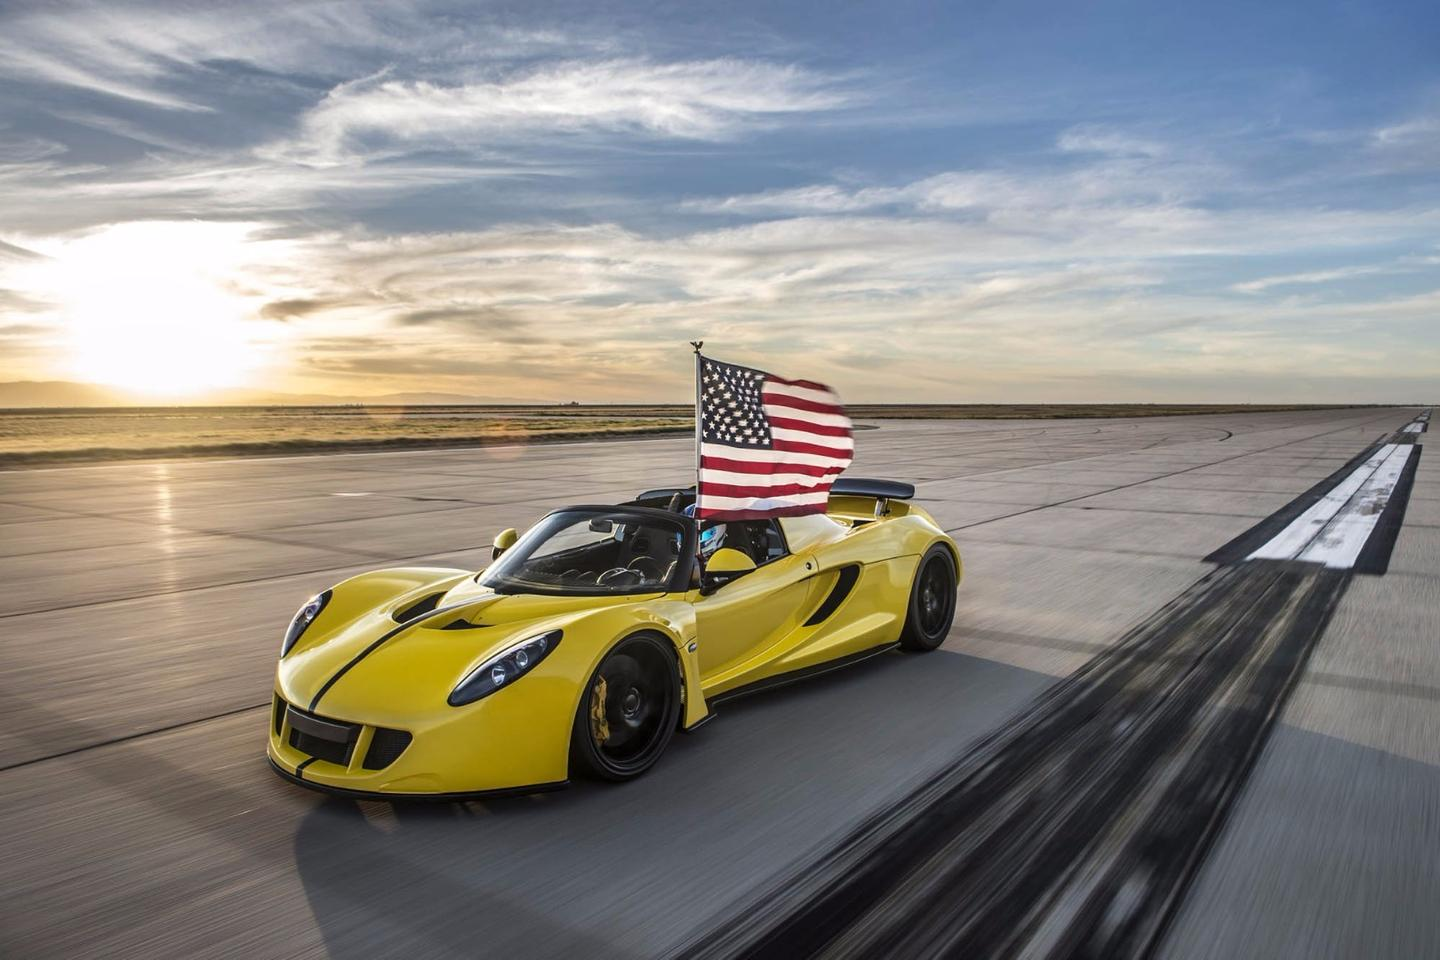 """The Hennessey Venom GT Spyder takes """"world's fastest convertible"""" bragging rights"""